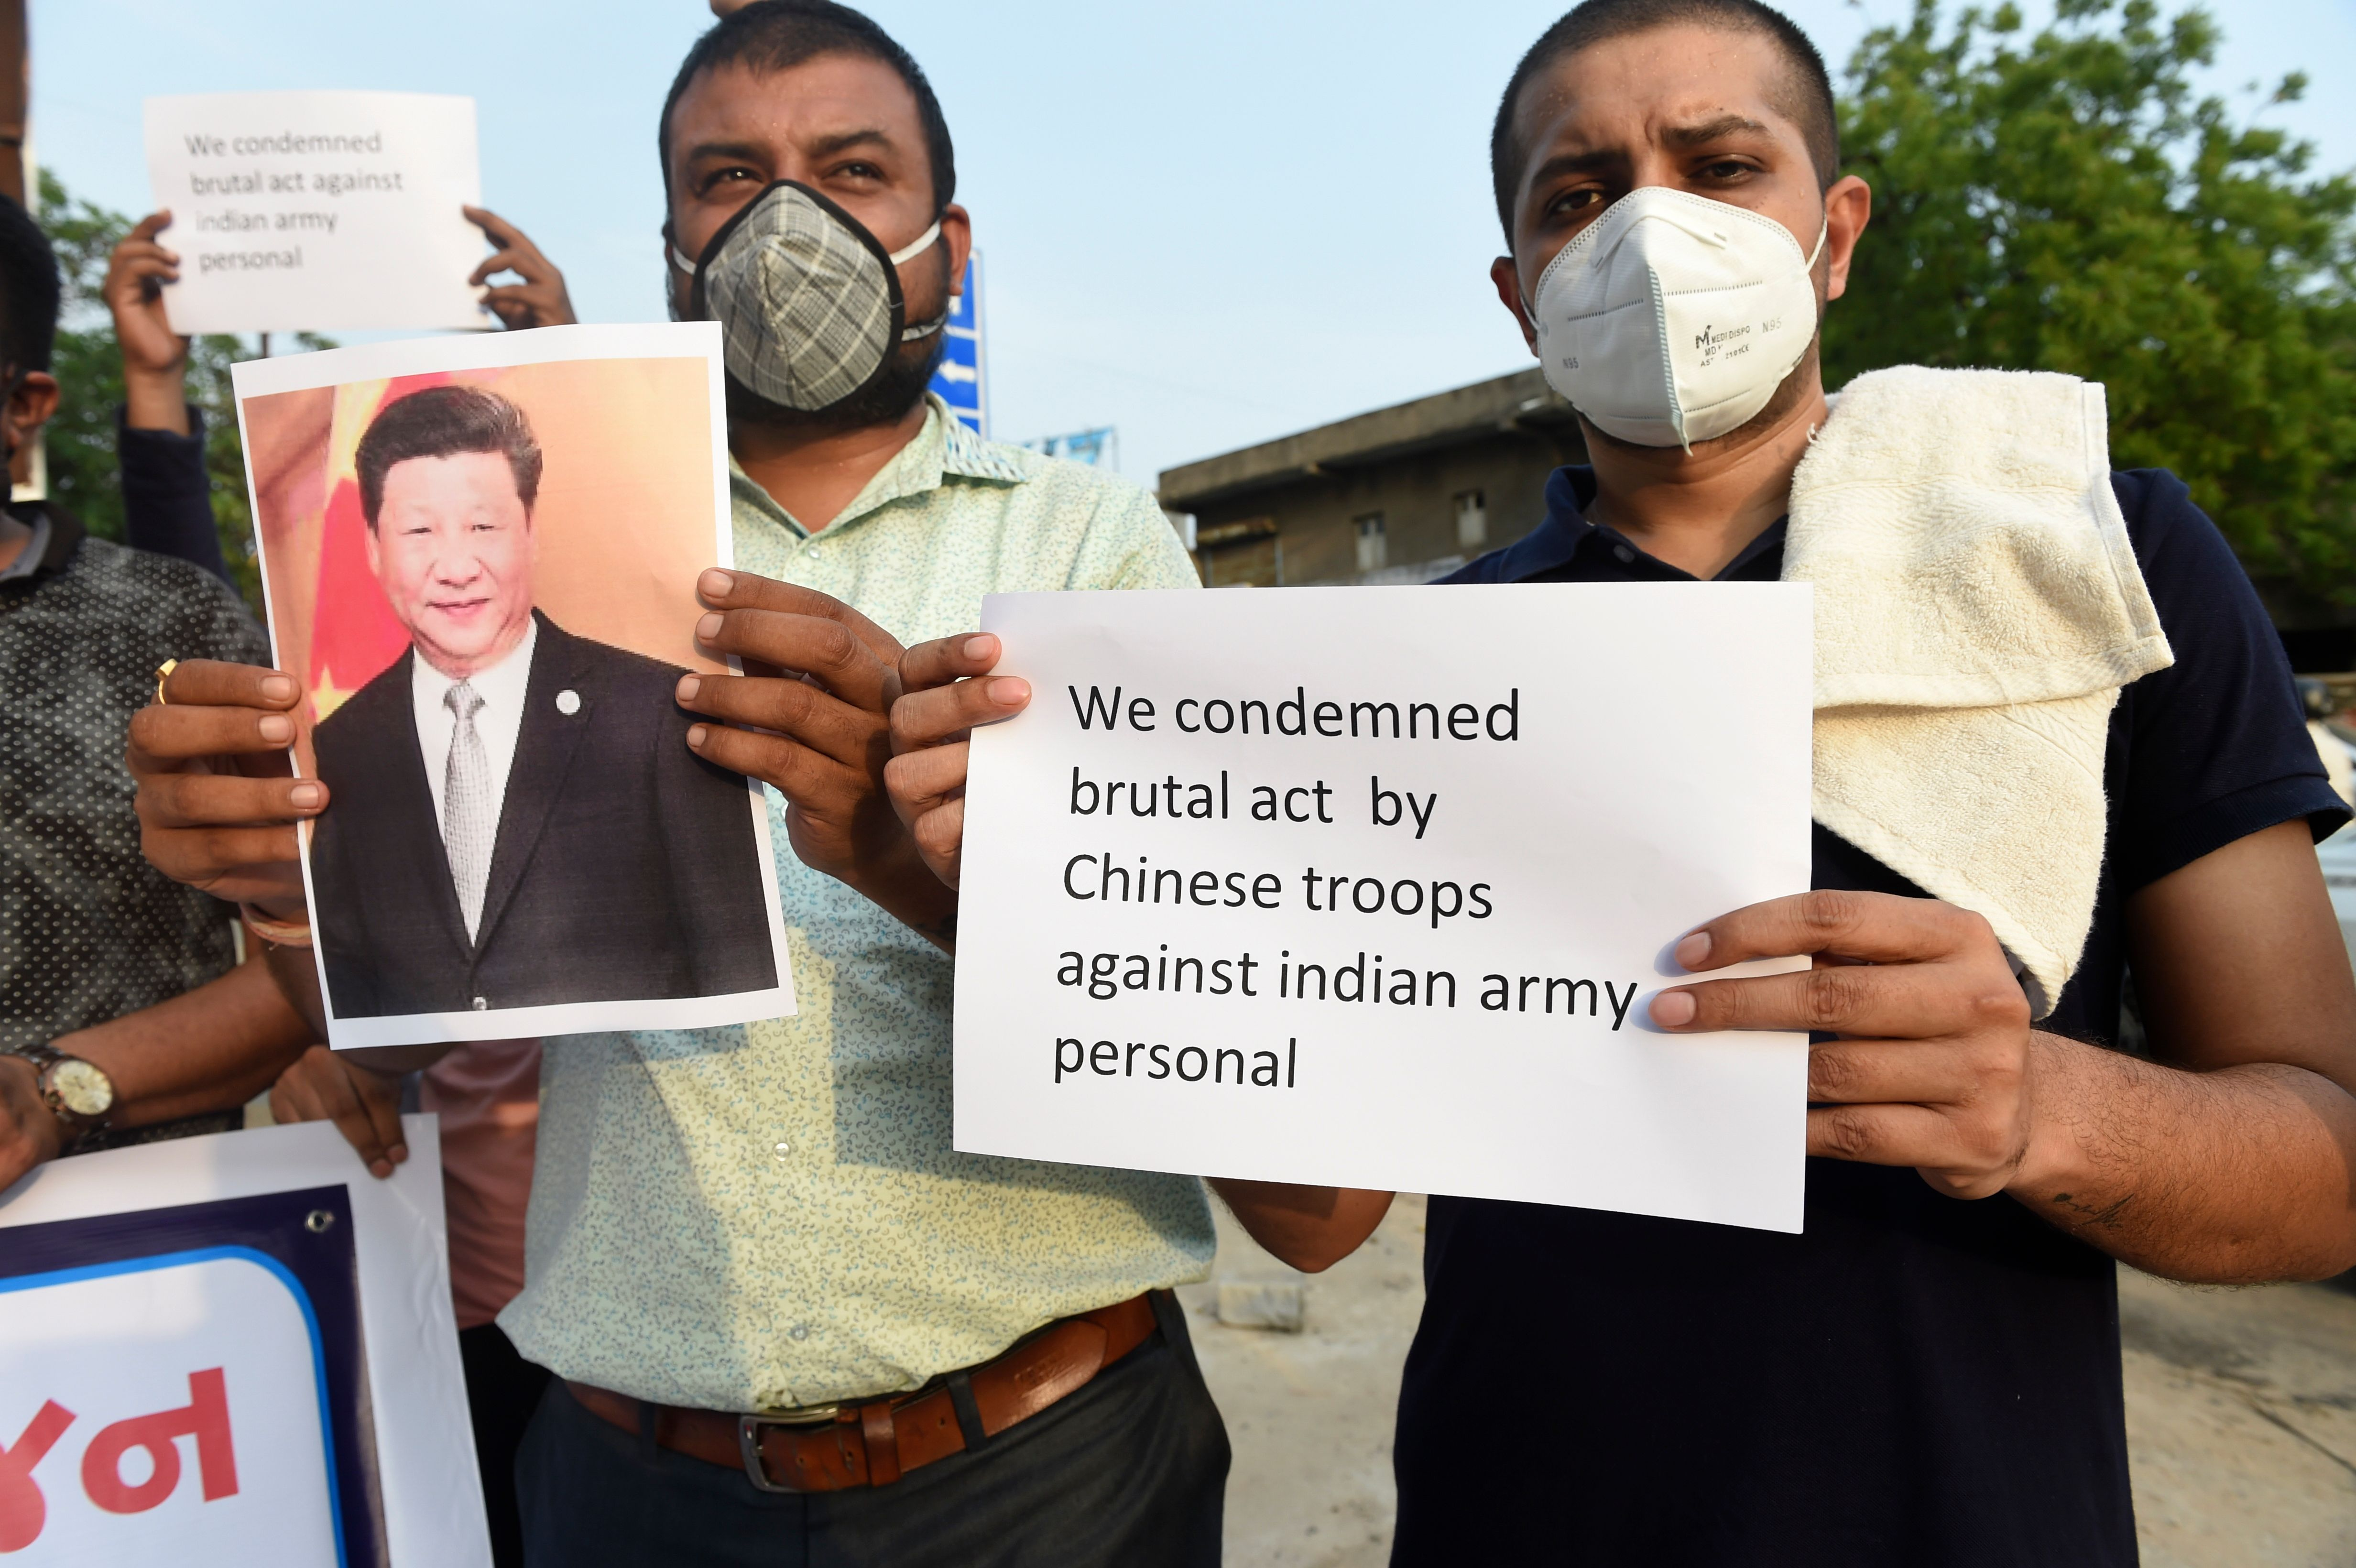 Indian citizens hold placards and shout slogans as they protest against the killing of three Indian soldiers by Chinese troops, on June 16, 2020. (Photo: Sam Panthaky/AFP via Getty Images)